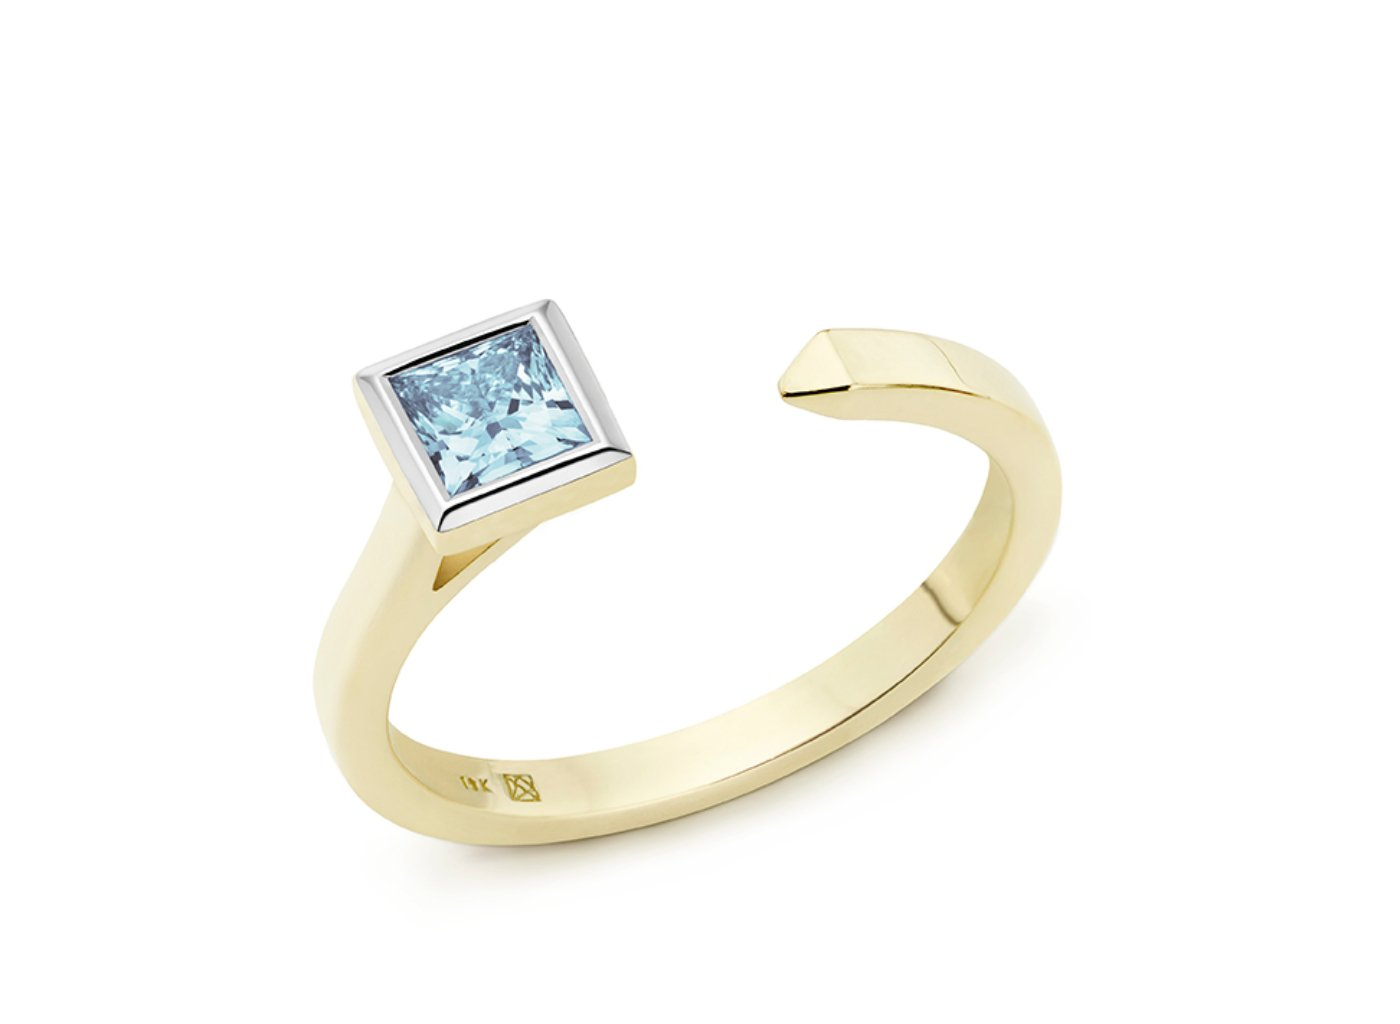 Side view of Princess open top 3/8 carat ring with blue diamond